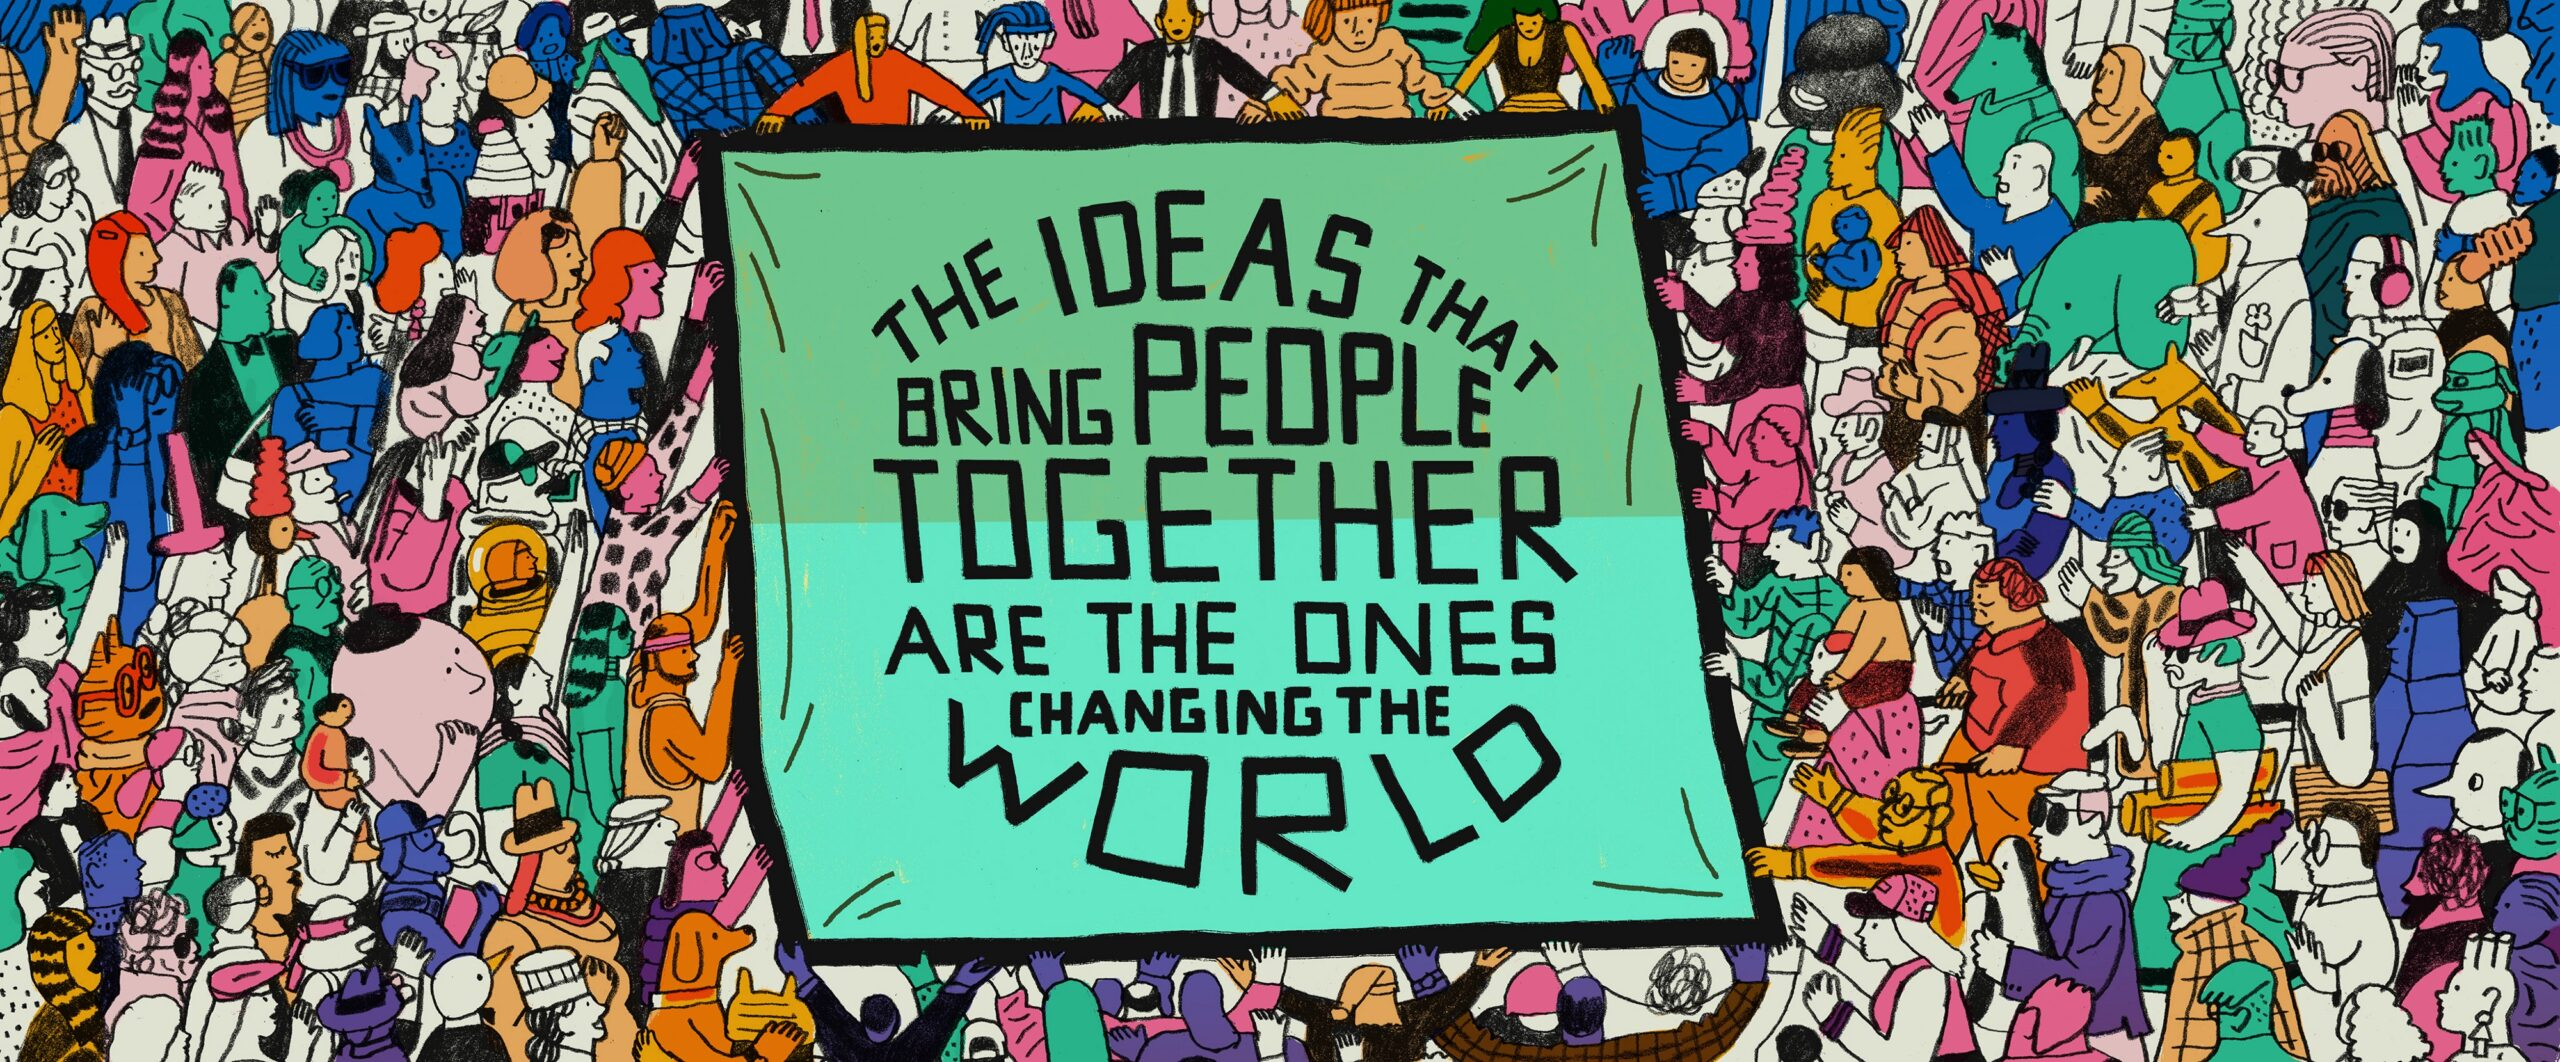 ideas that bring people together.